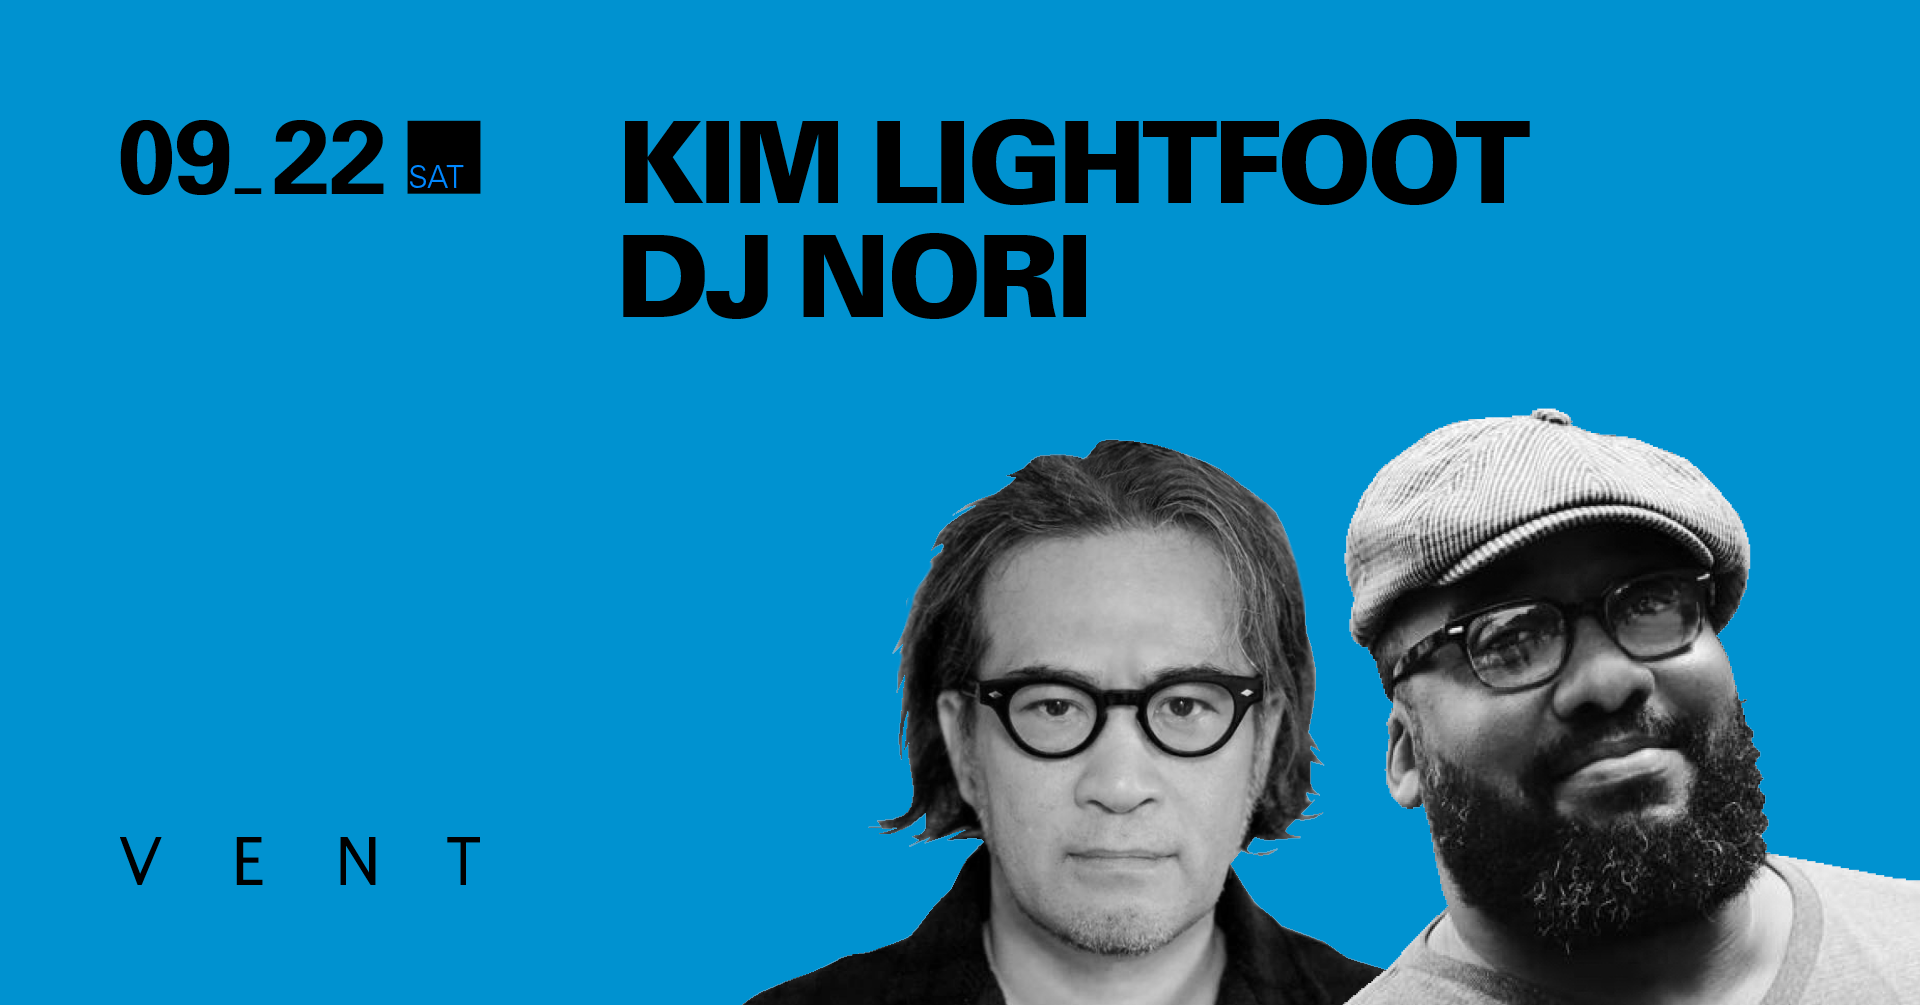 Kim Lightfoot & DJ NORI